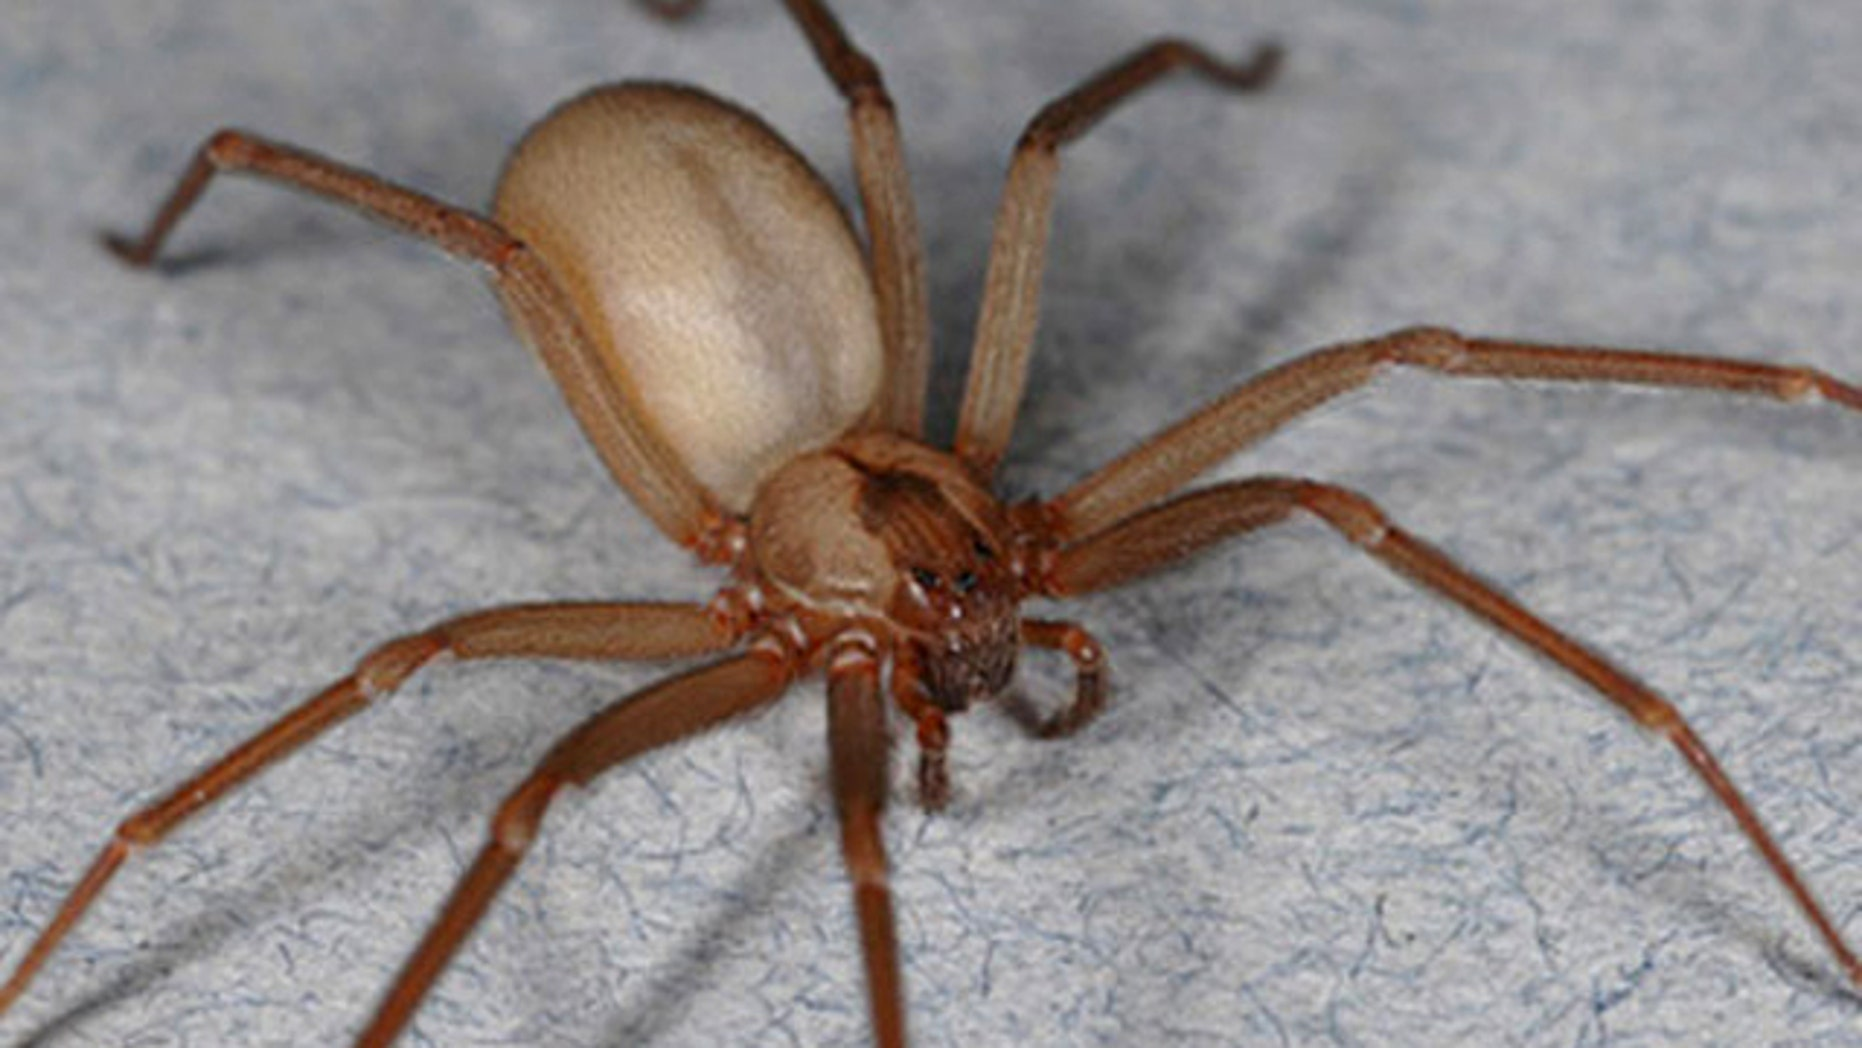 Brown recluse spiders exist within a smaller range than many realize, and their existence may be threatened by climate change.